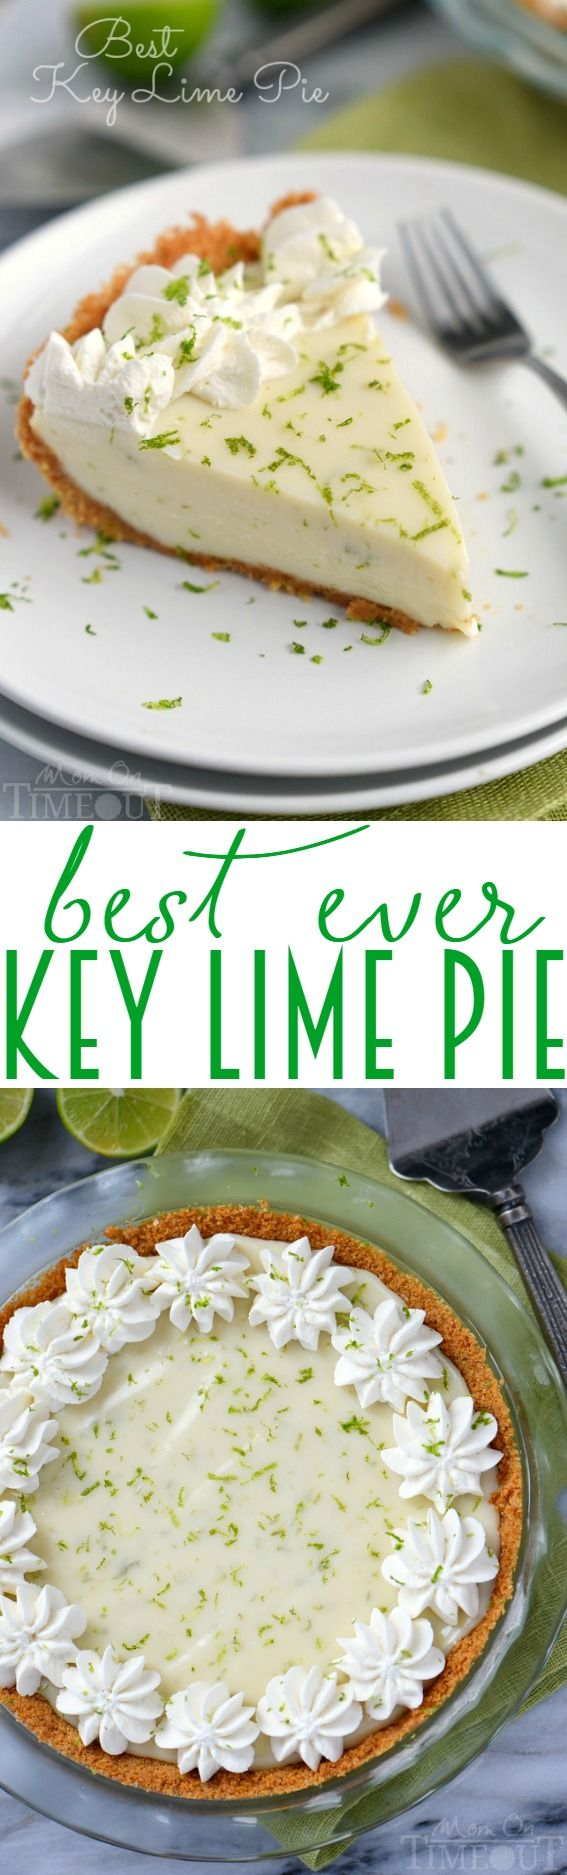 The Best Key Lime Pie recipe EVER! And so darn easy too! You won't be able to stop at just one slice! The perfect easy dessert recipe! | MomOnTimeout.com | #pie #recipe